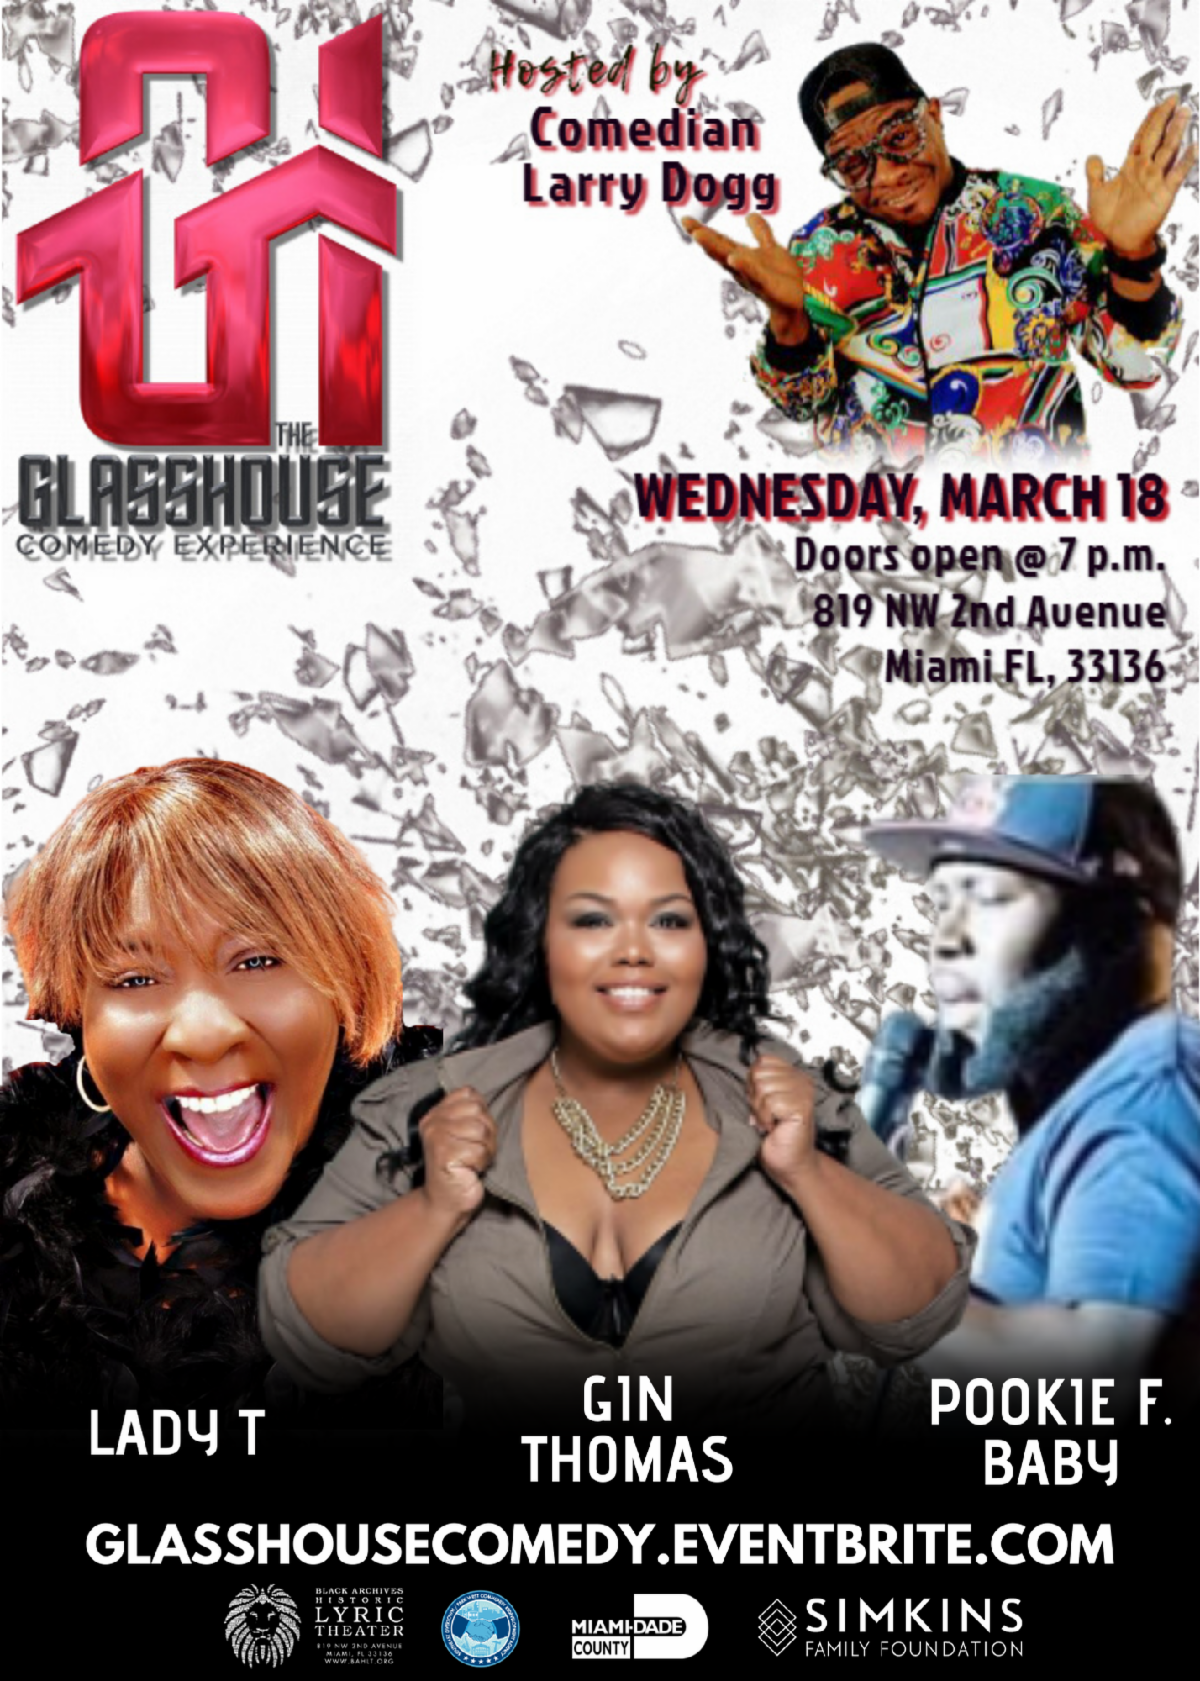 THE BLACK ARCHIVES PRESENTS THE GLASSHOUSE COMEDY EXPERIENCE EACH & EVERY 3RD WEDNESDAY